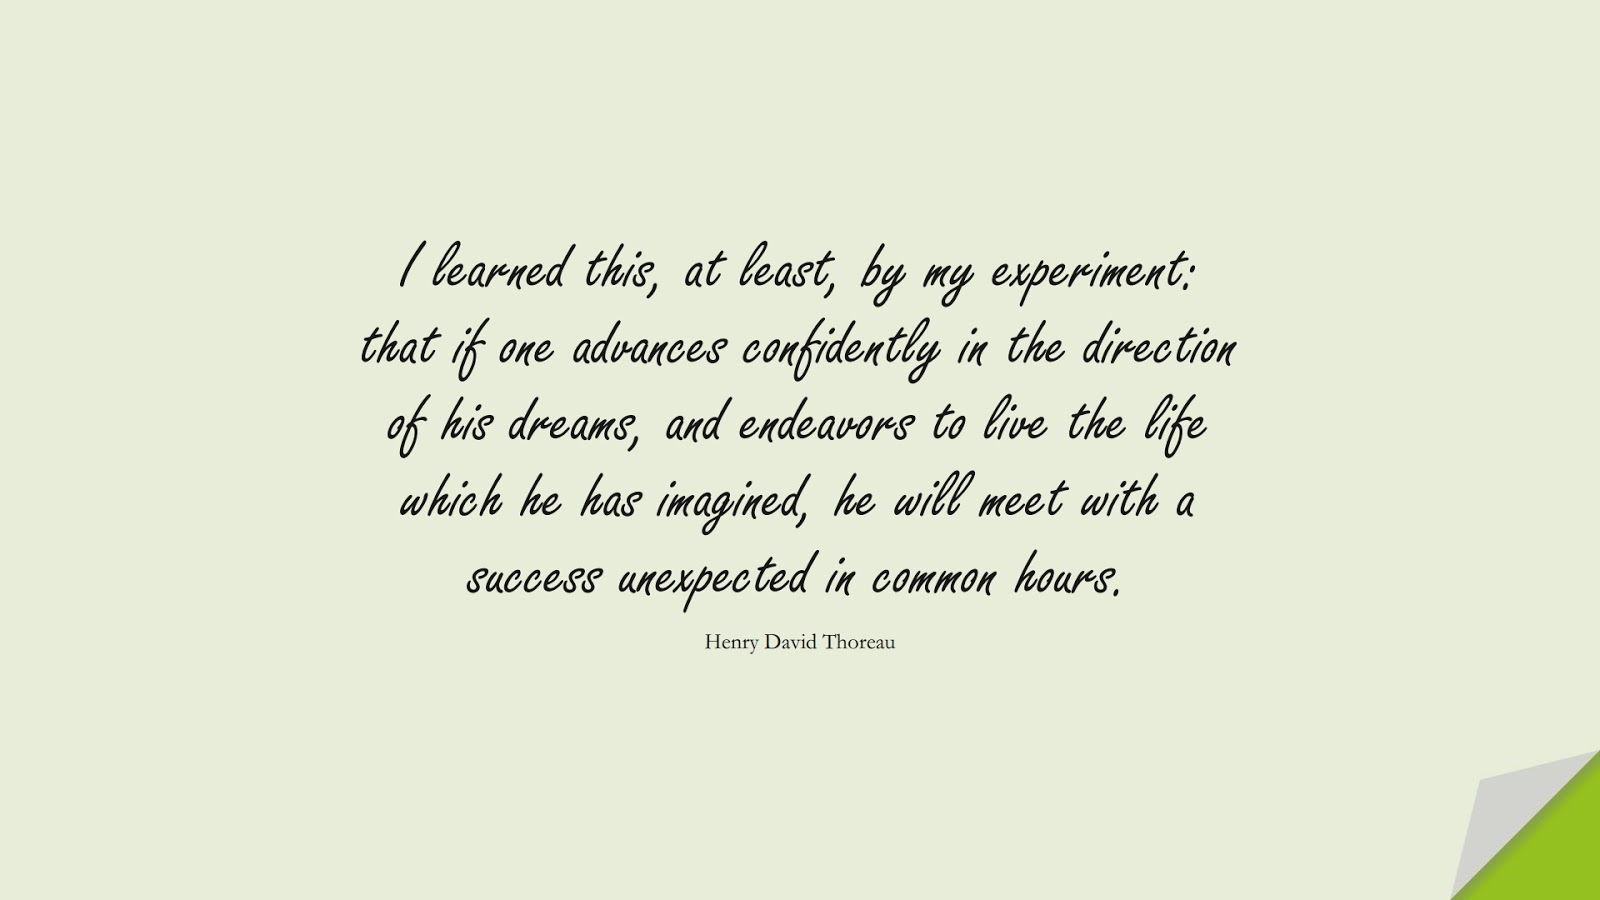 I learned this, at least, by my experiment: that if one advances confidently in the direction of his dreams, and endeavors to live the life which he has imagined, he will meet with a success unexpected in common hours. (Henry David Thoreau);  #HardWorkQuotes